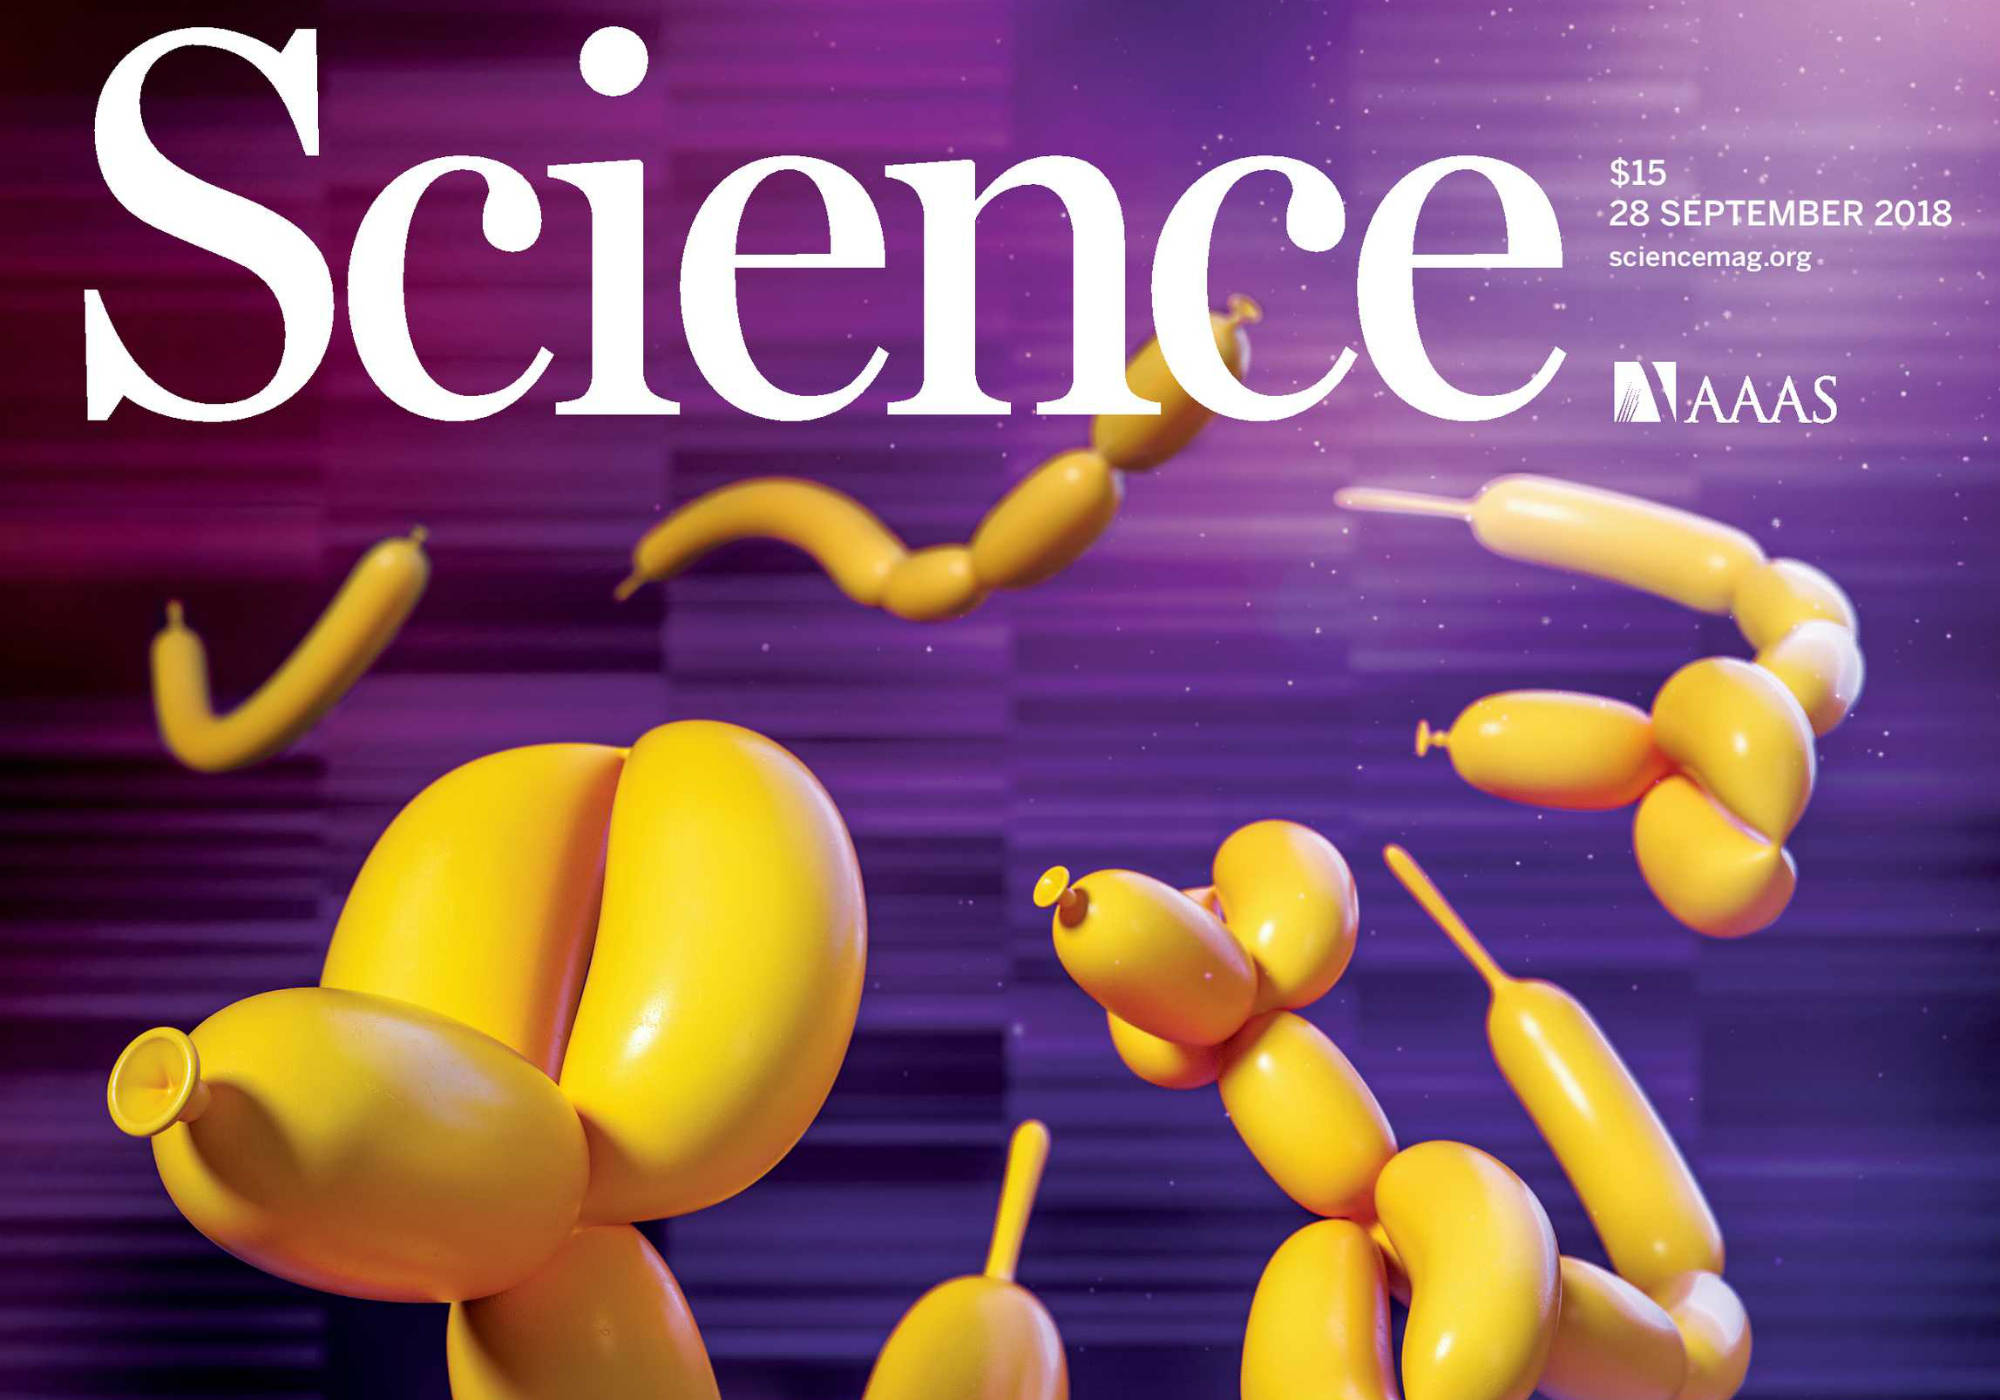 Science Magazine publishes Brazilian scientists' critical manifesto